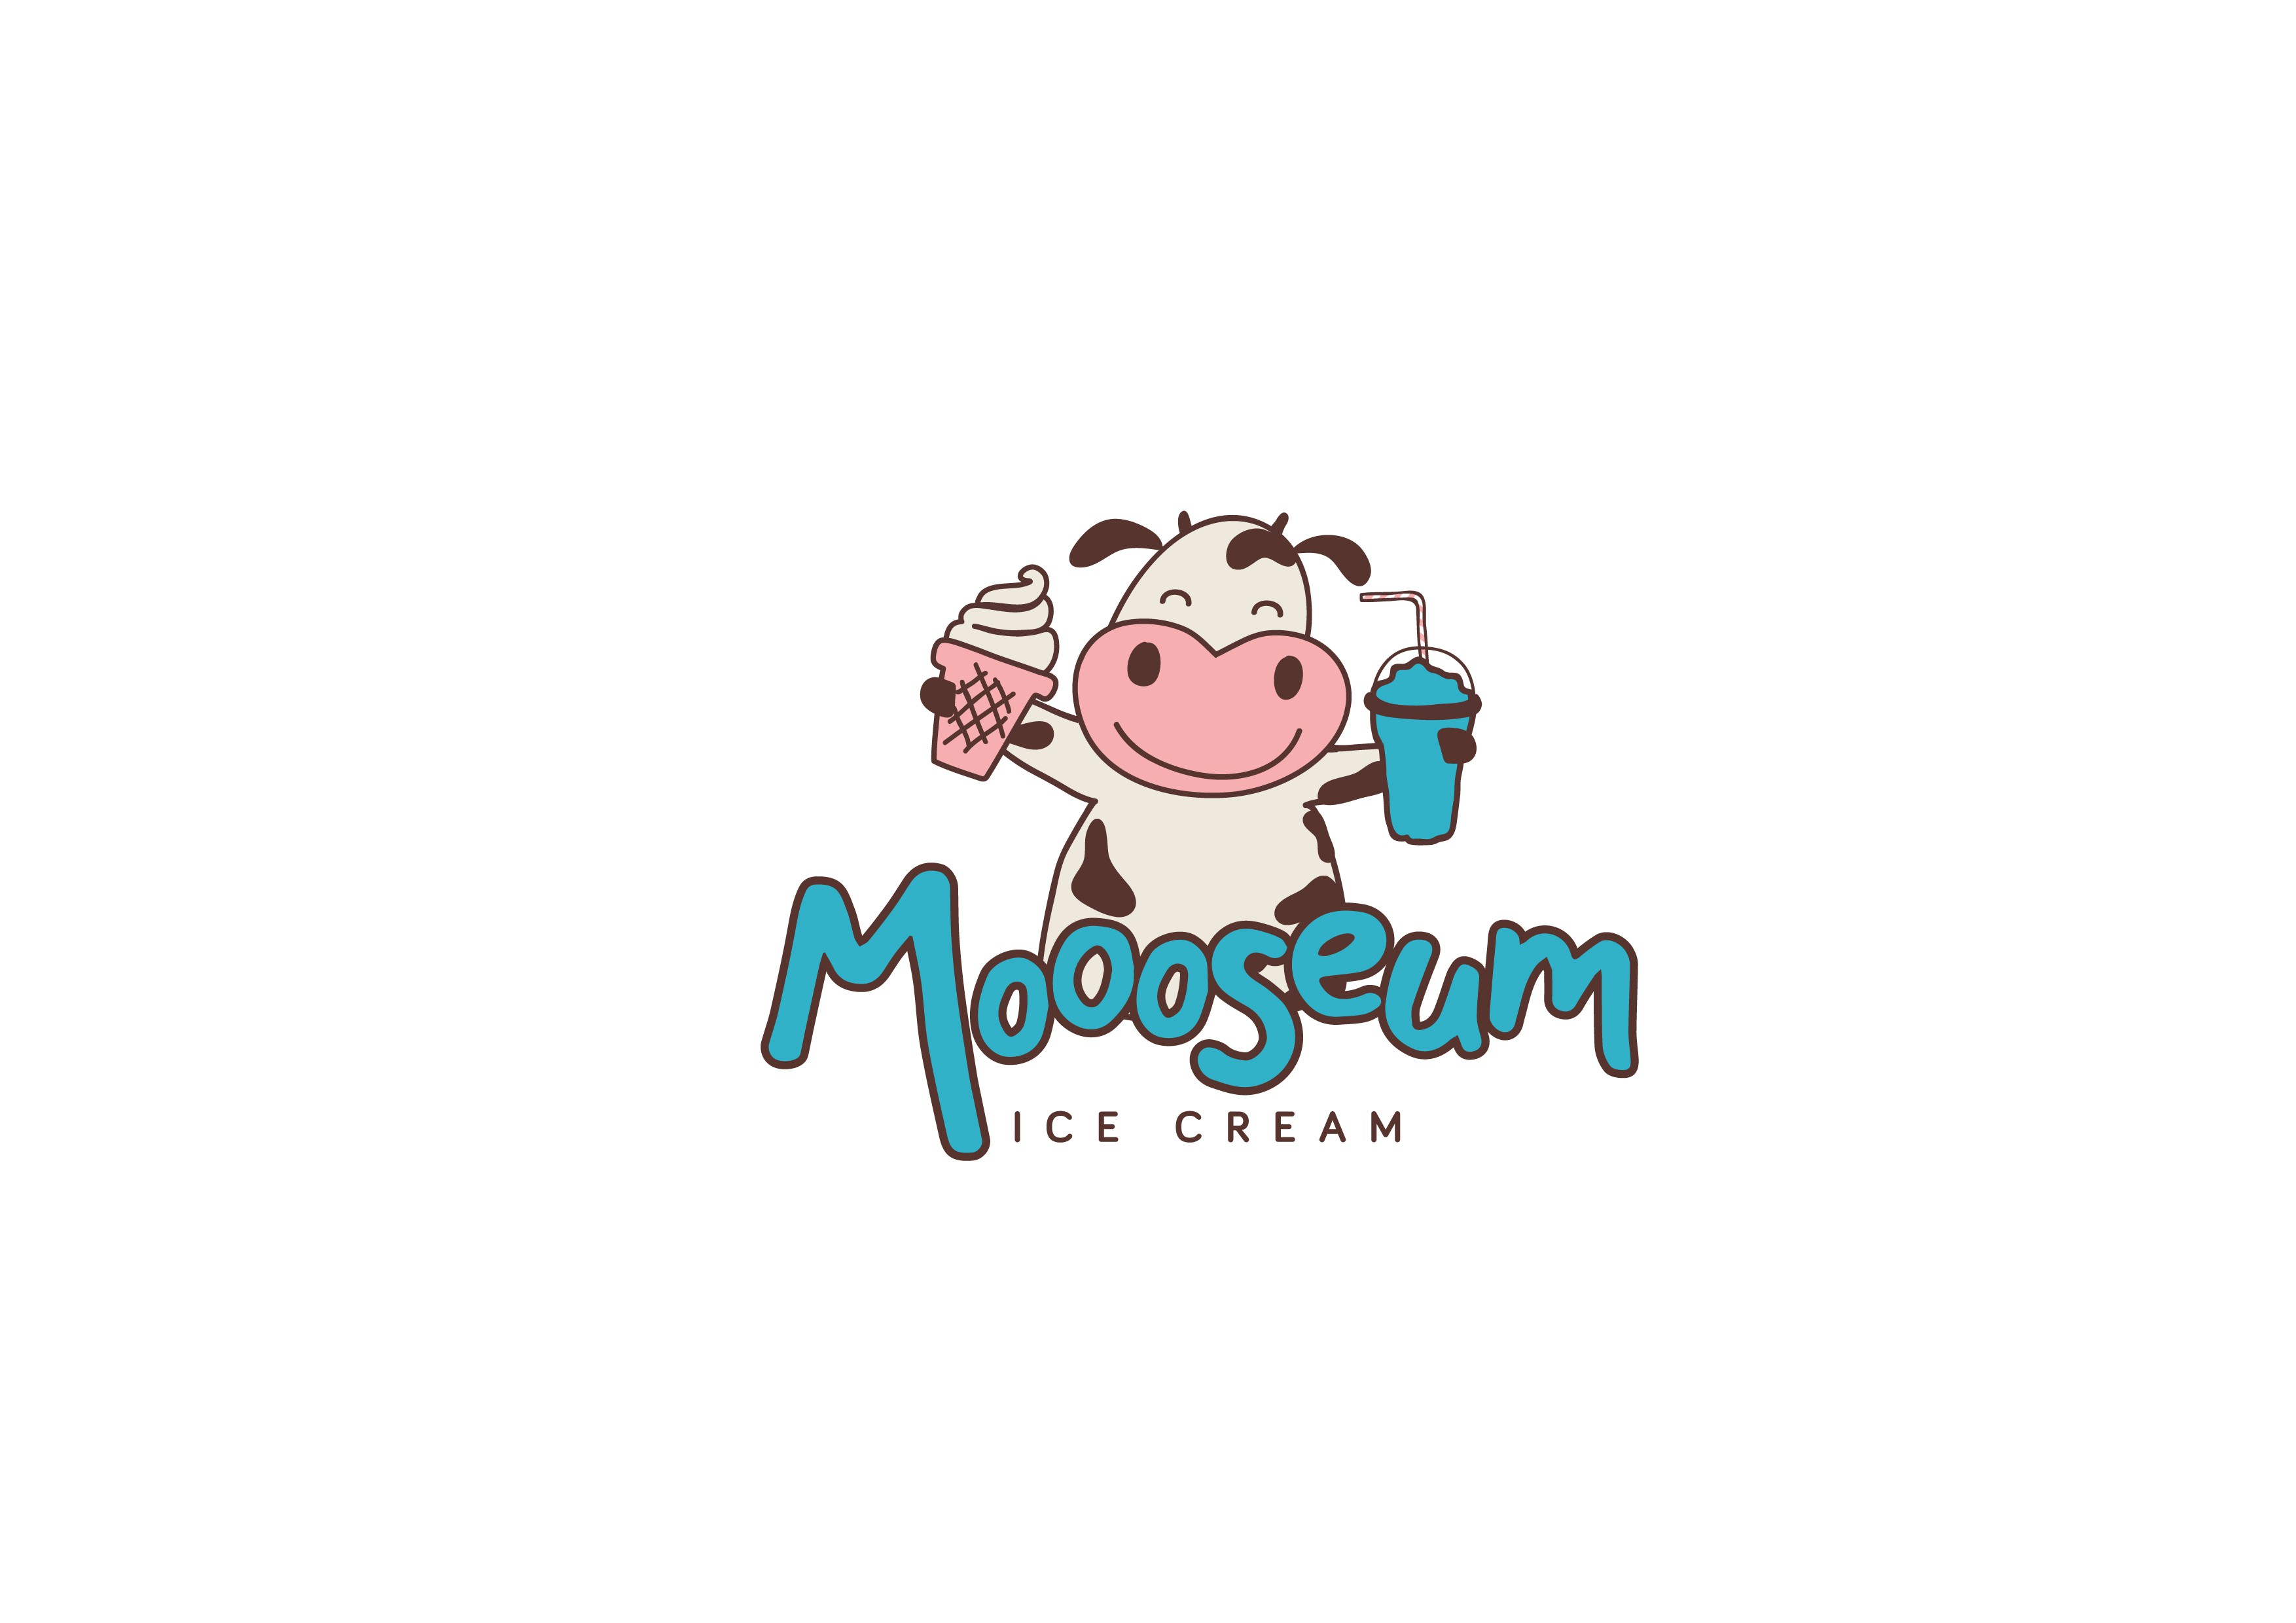 Ice Cream Store Logo - Fun, Yummy, and Exciting Designs Wanted